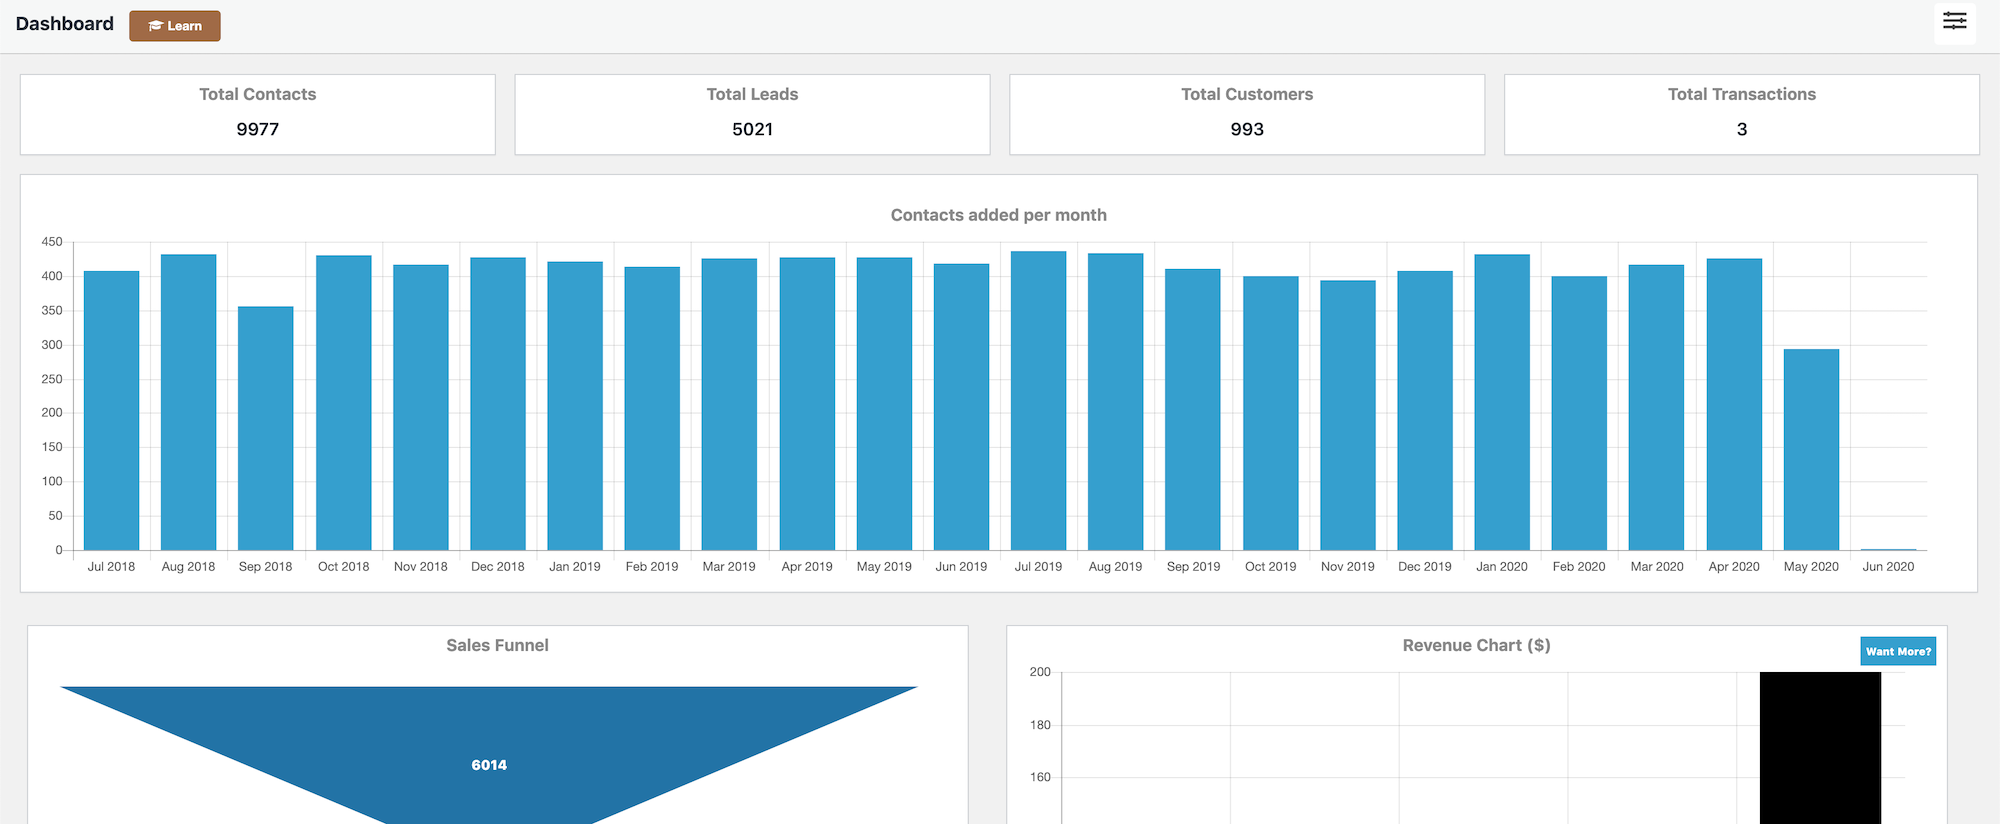 CRM Dashboard - View your financials at a glance